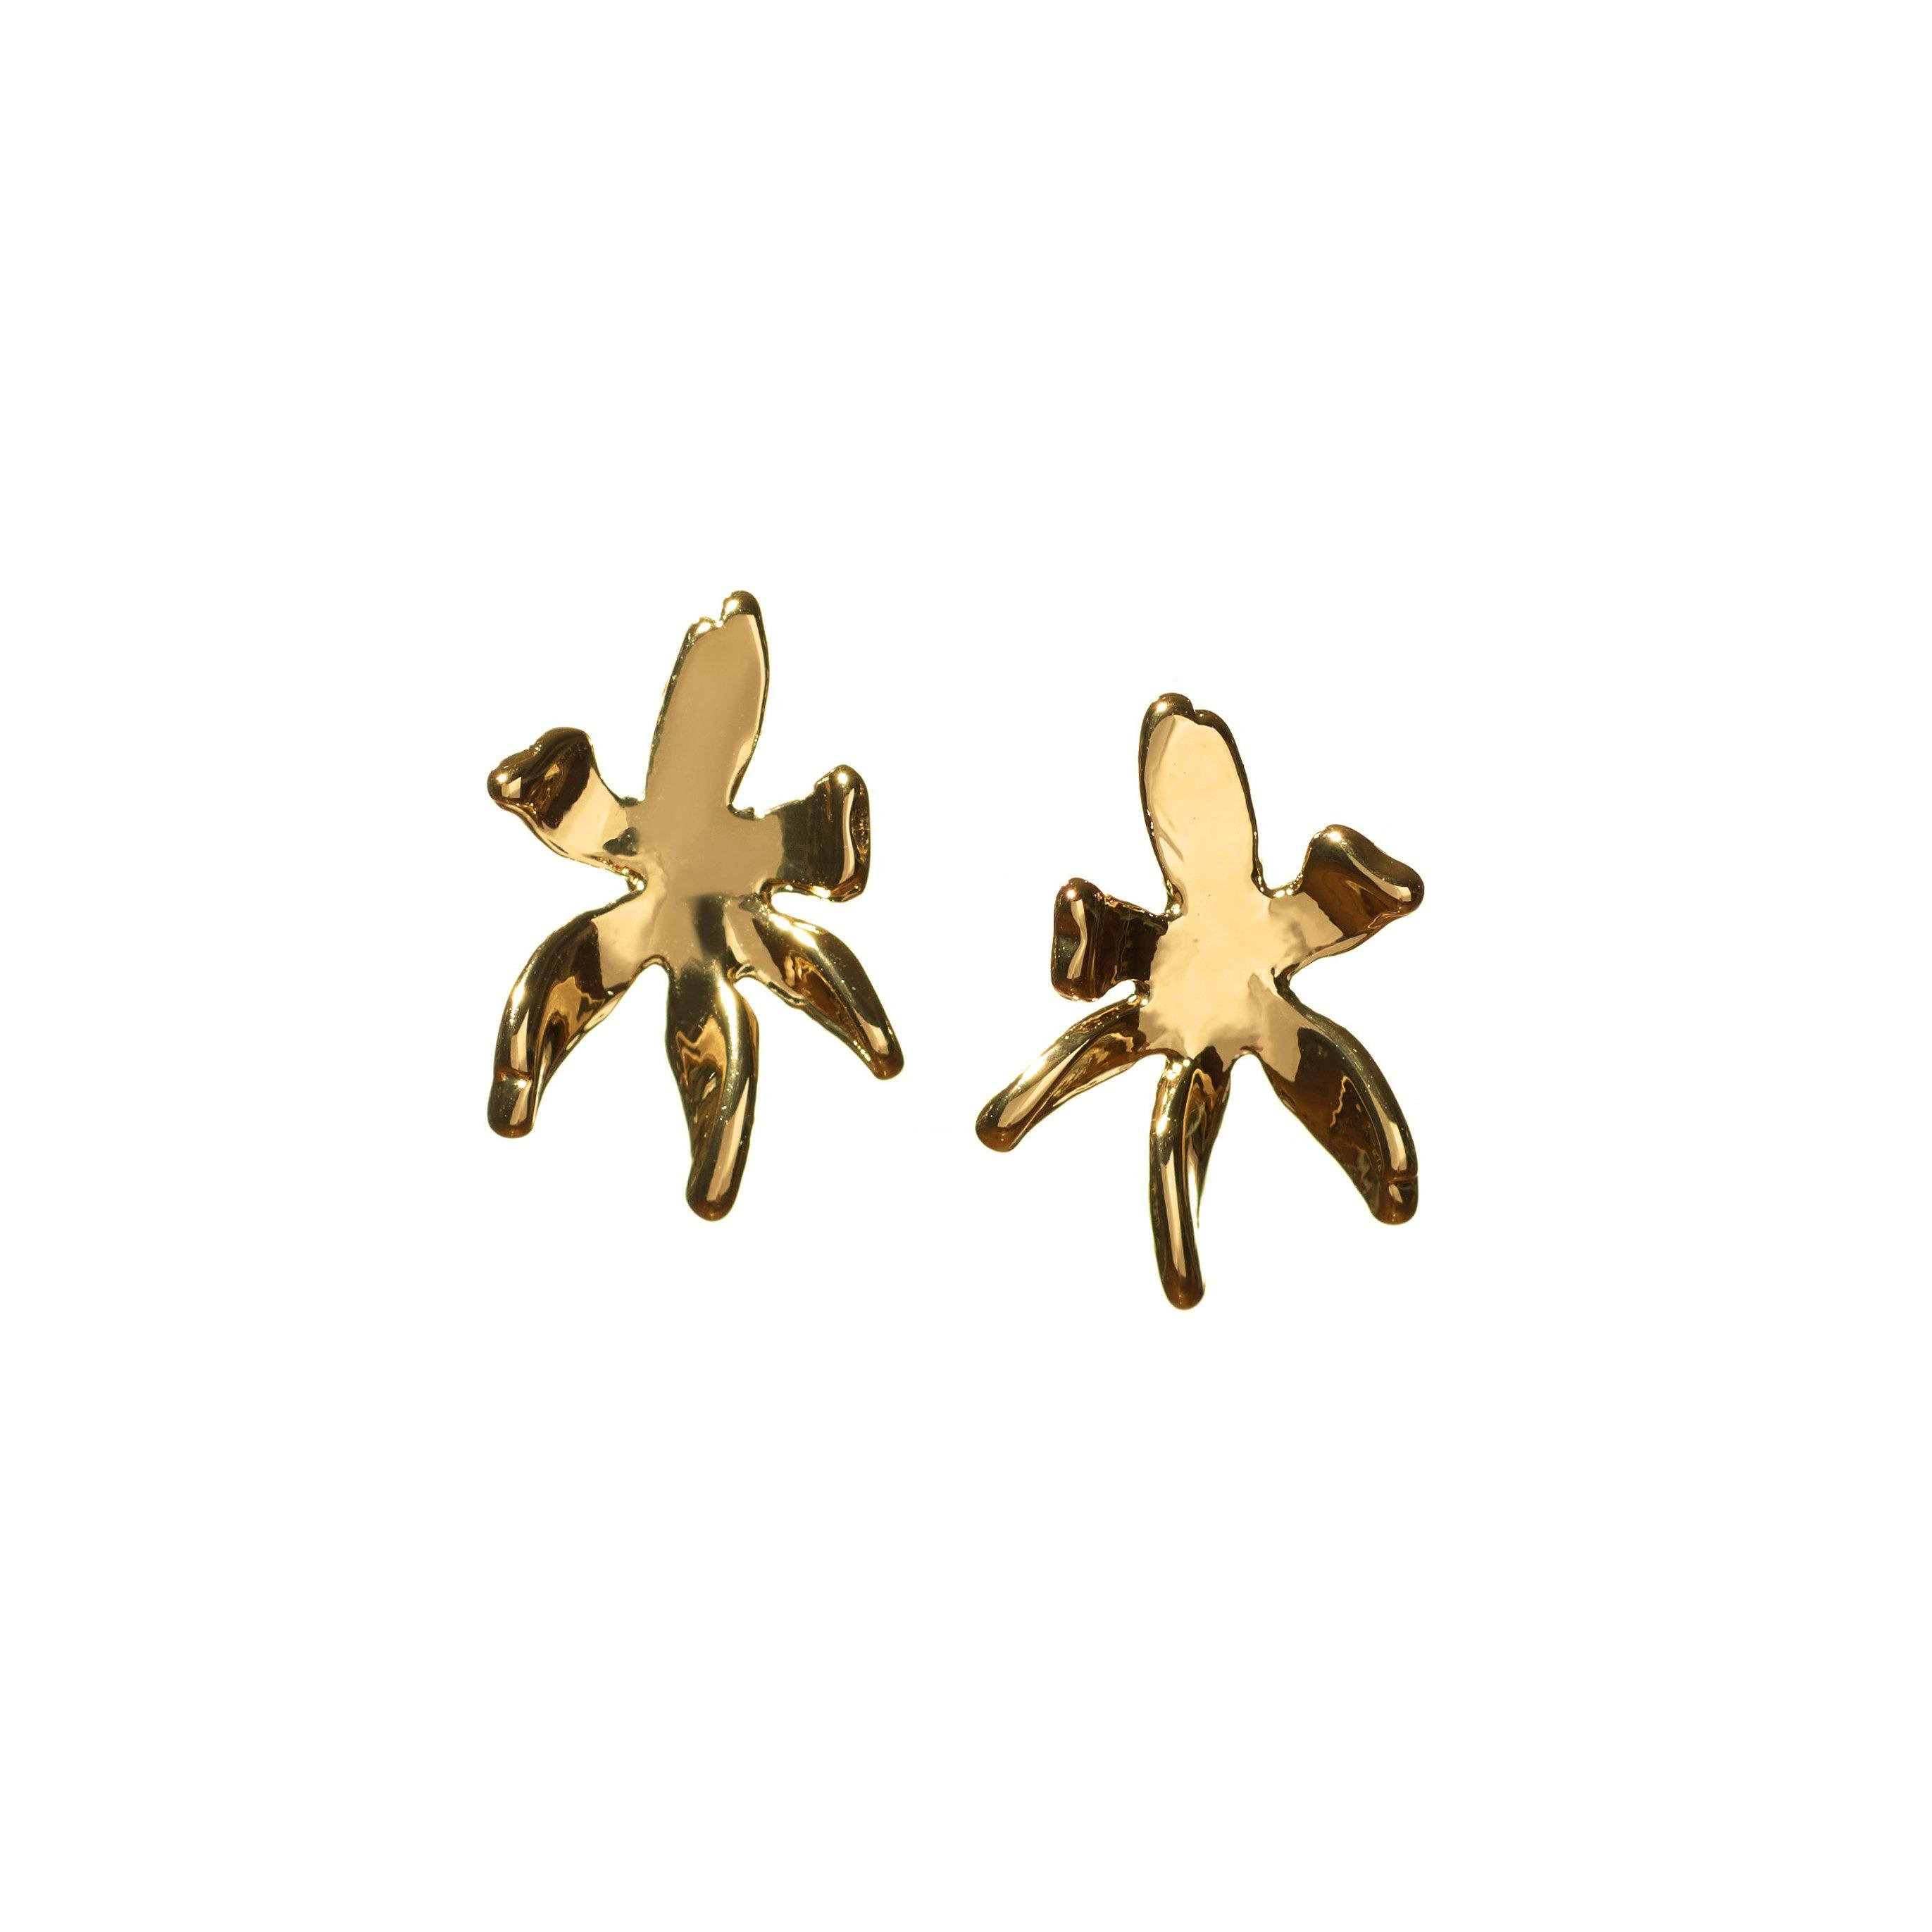 GOLD LILY STUD EARRINGS